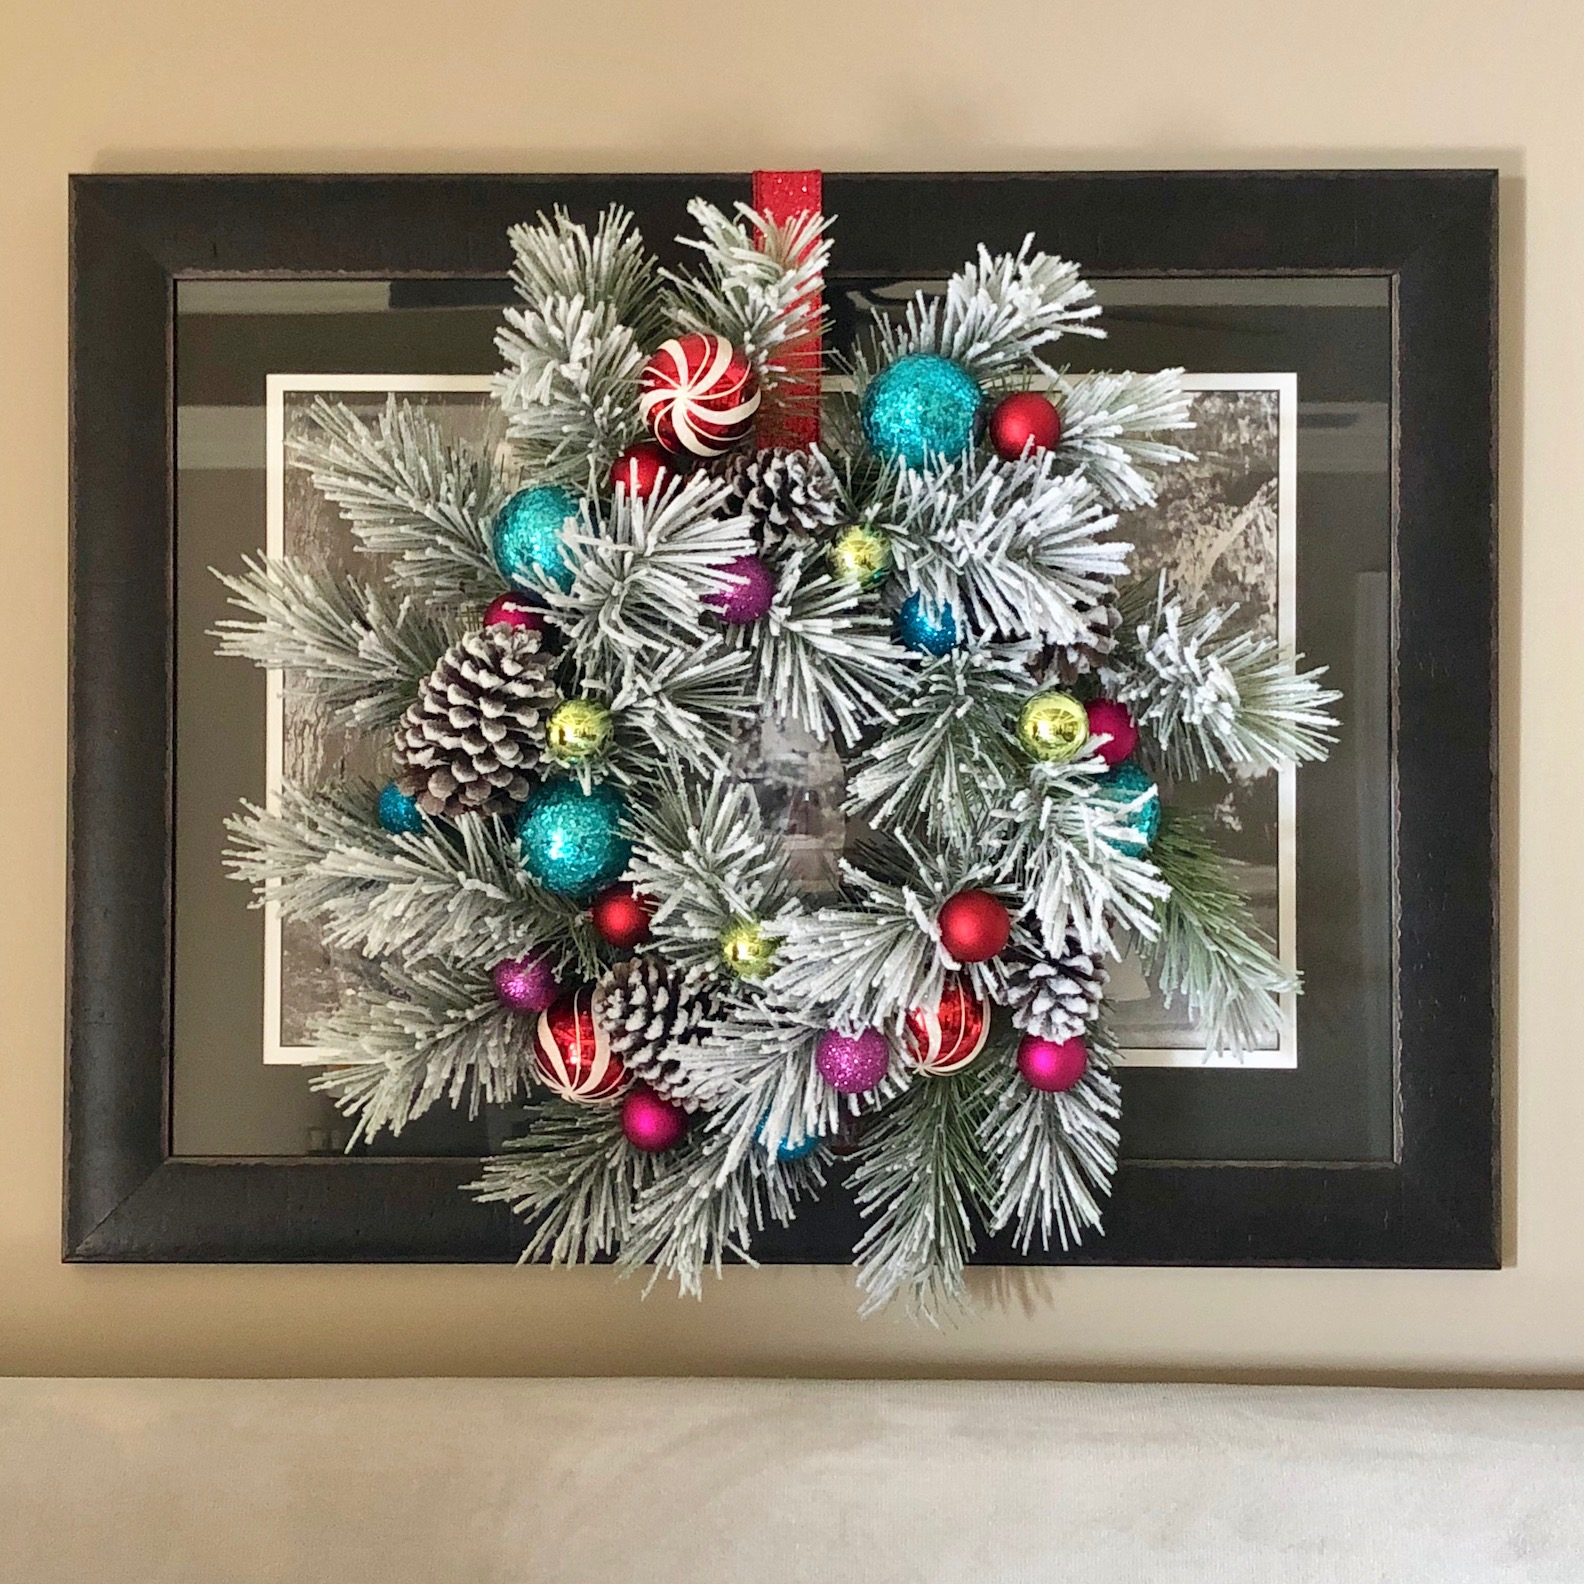 Christmas Wreath, done by me!